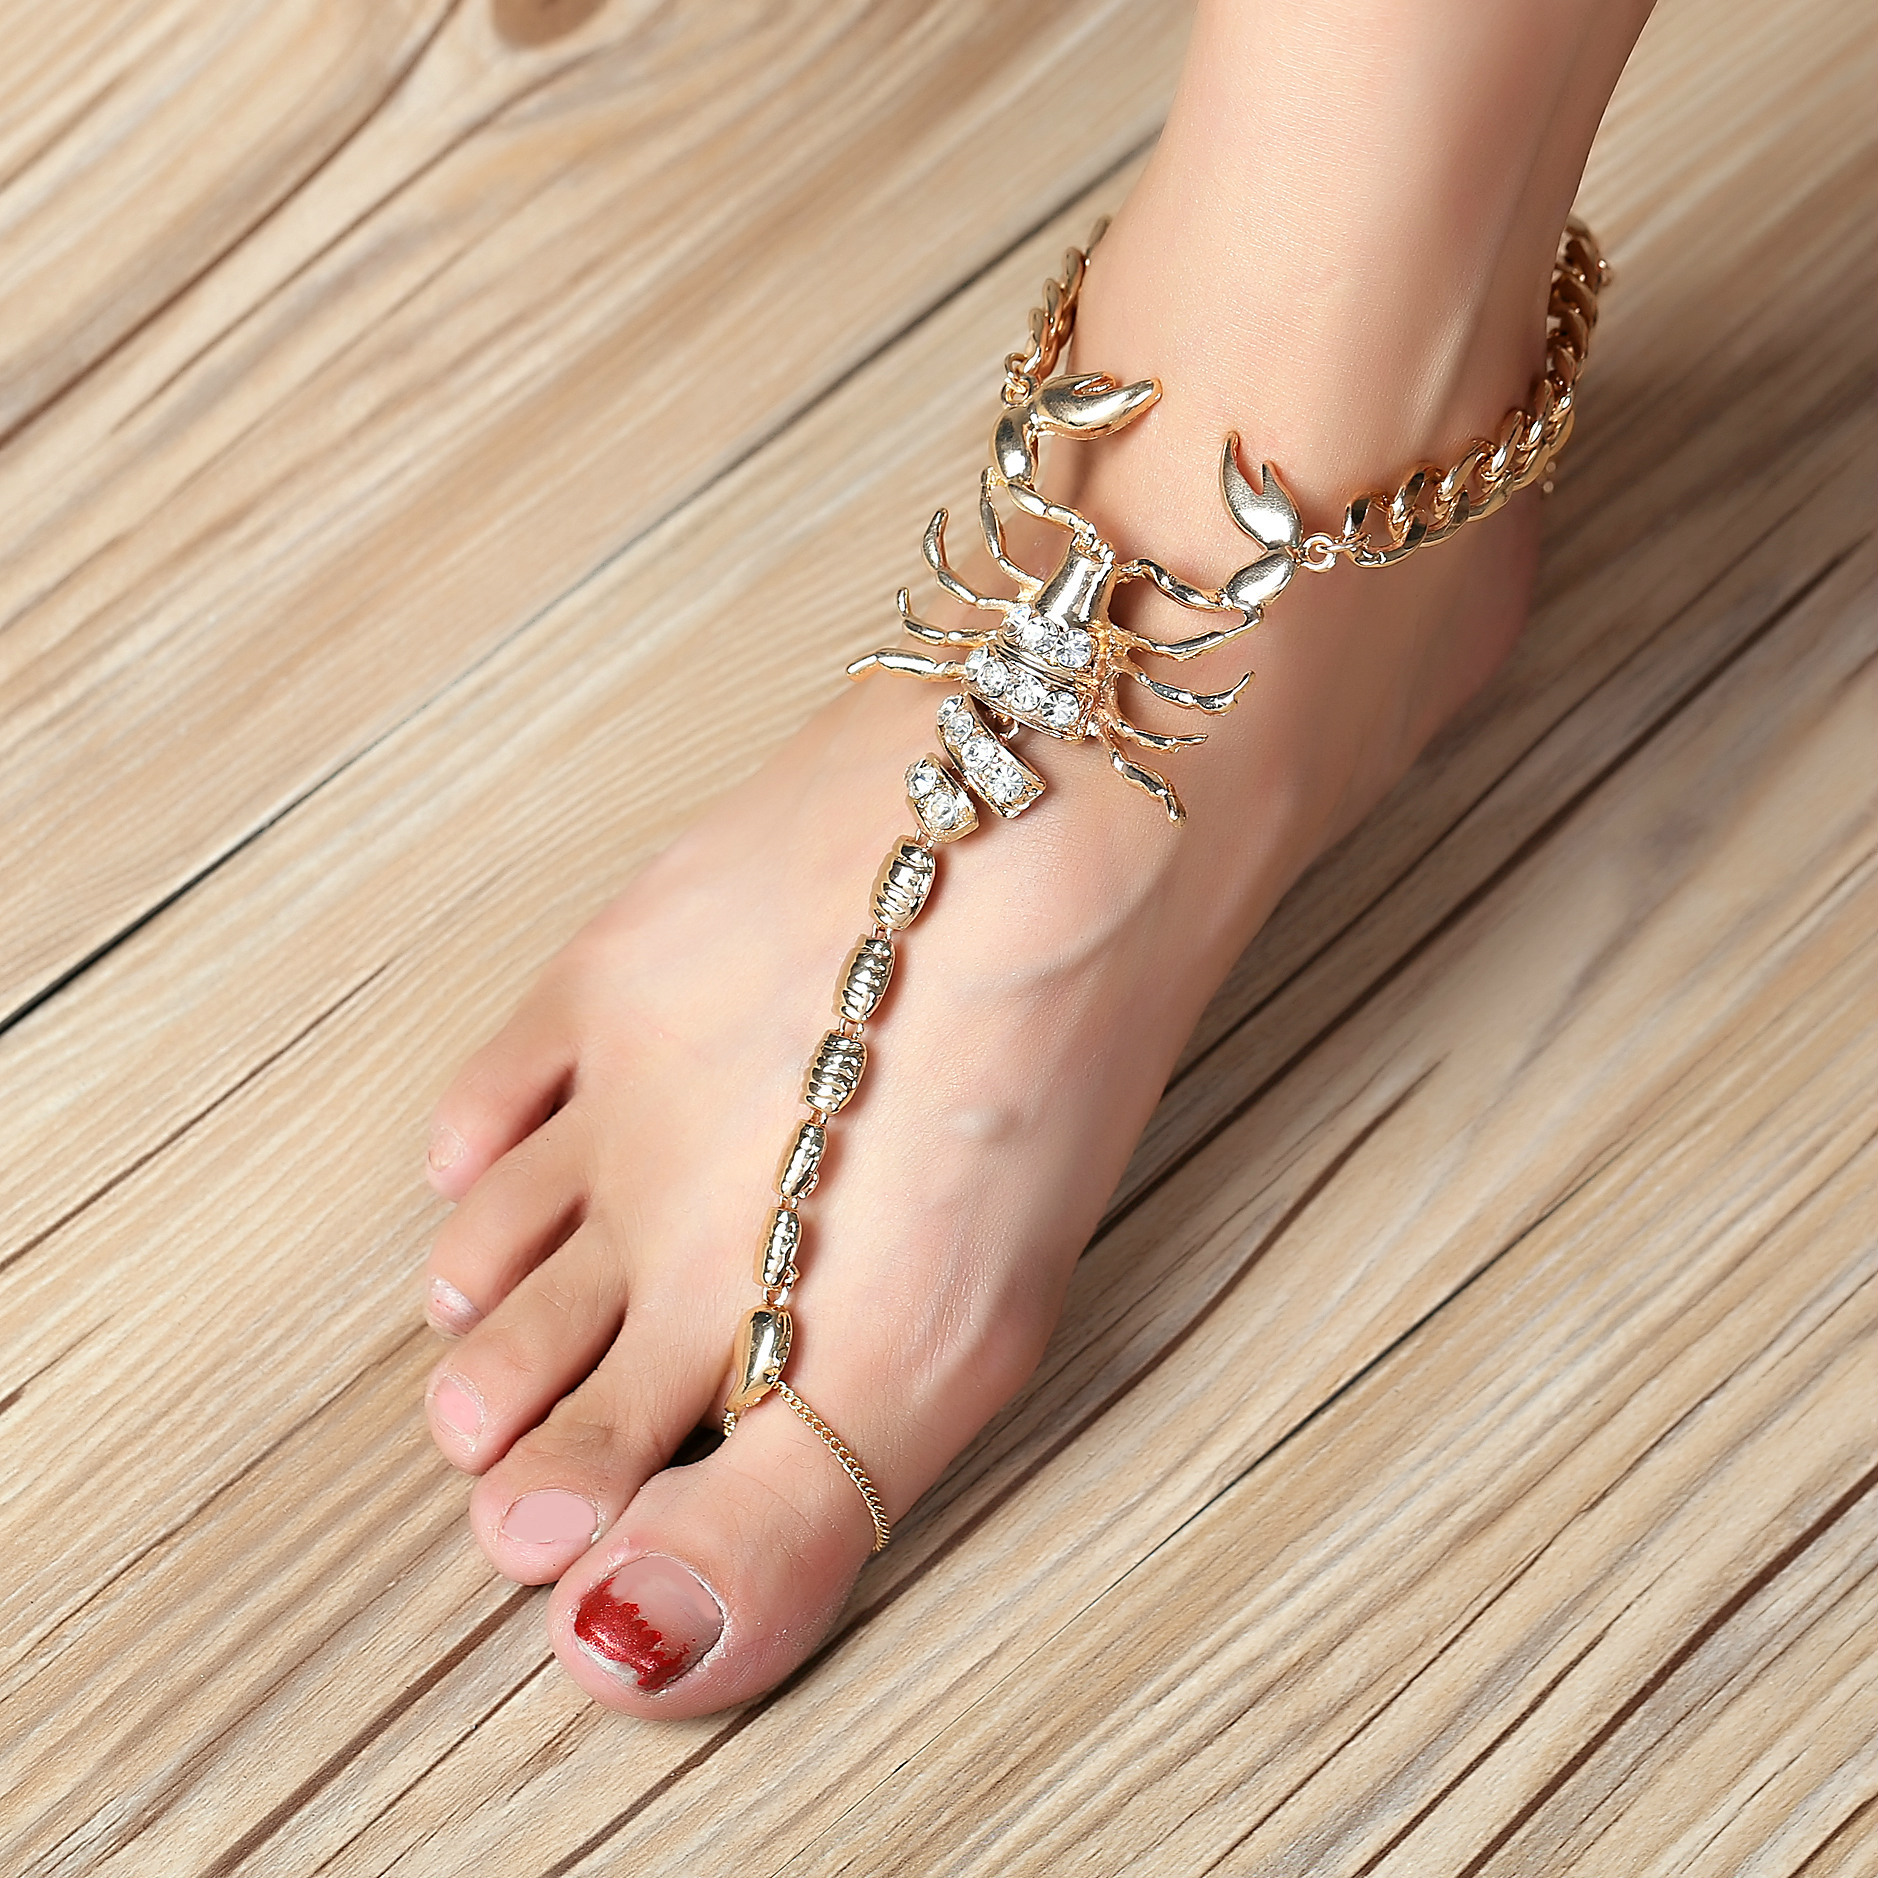 pin solid flower anklets plumeria chain jewelry silver anklet sterling foot fine